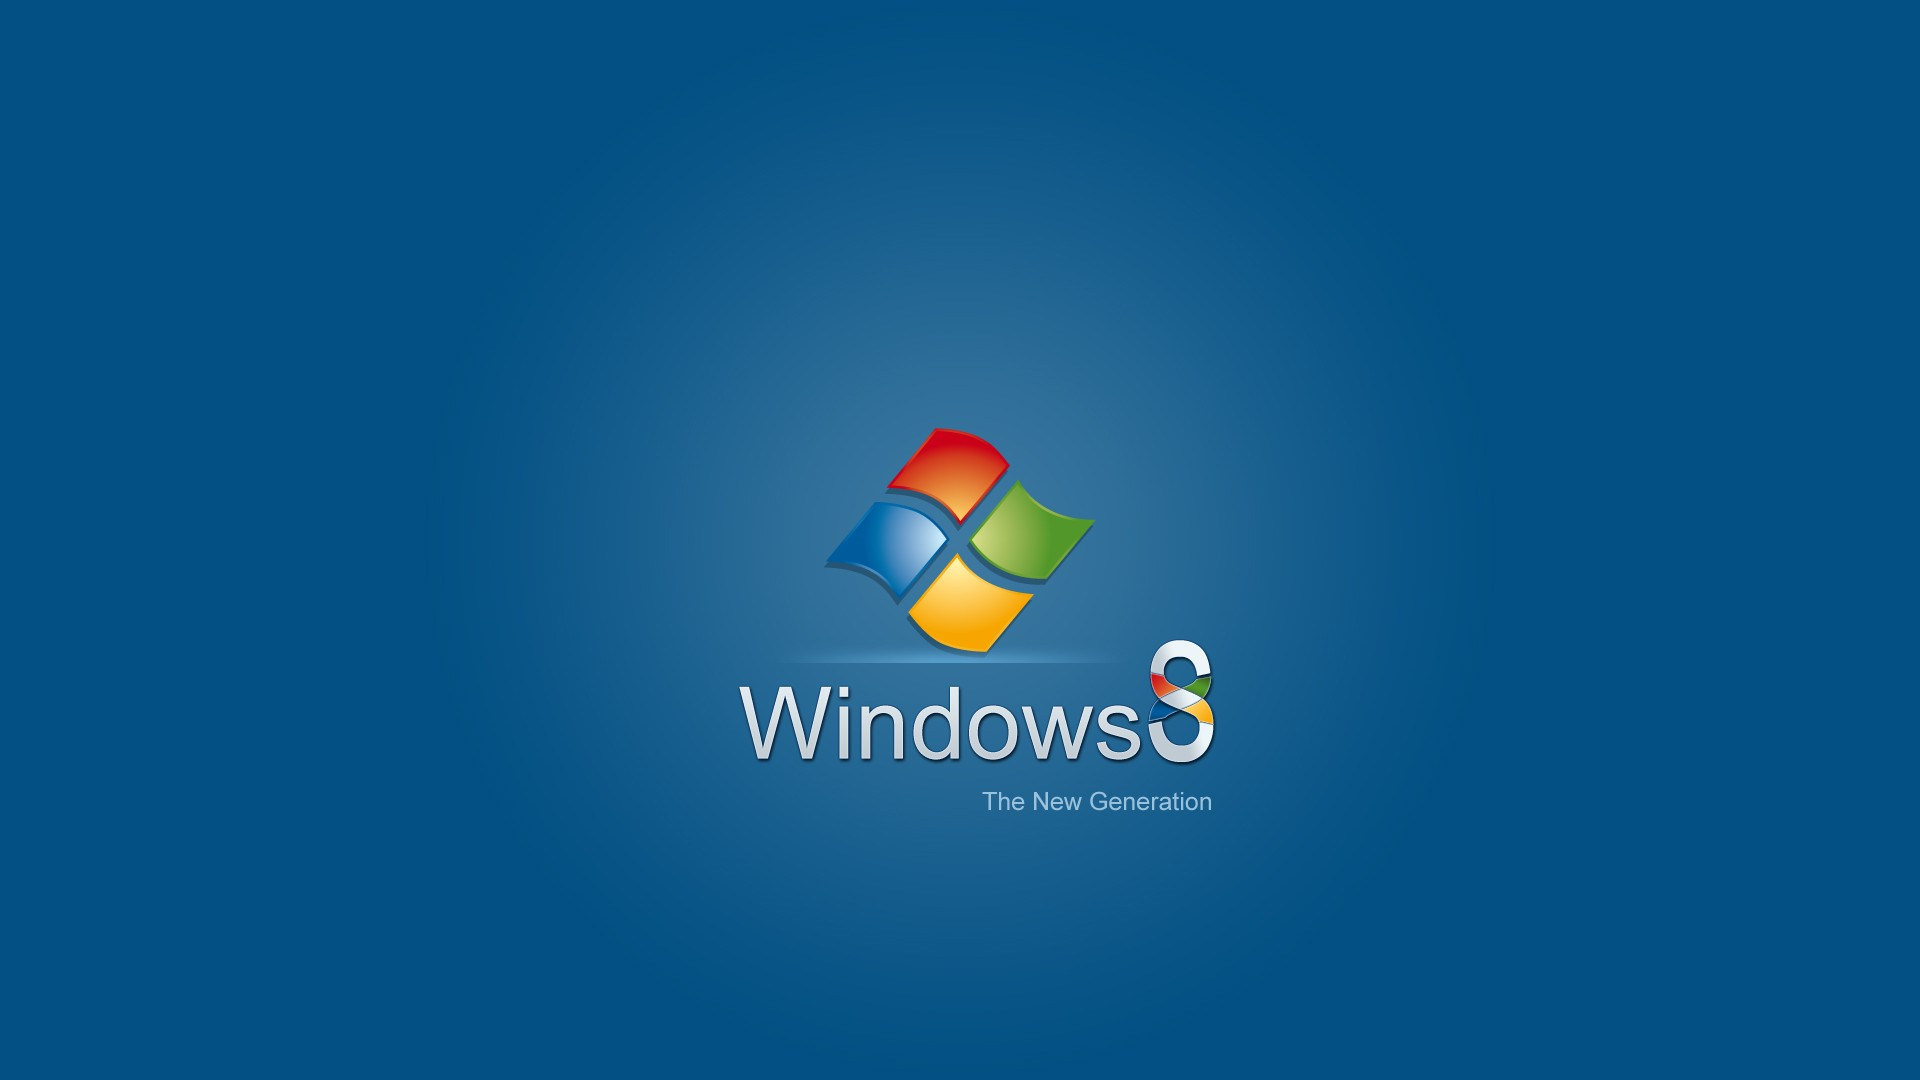 49+] Windows 8.1 Wallpaper HD 1080P on ...